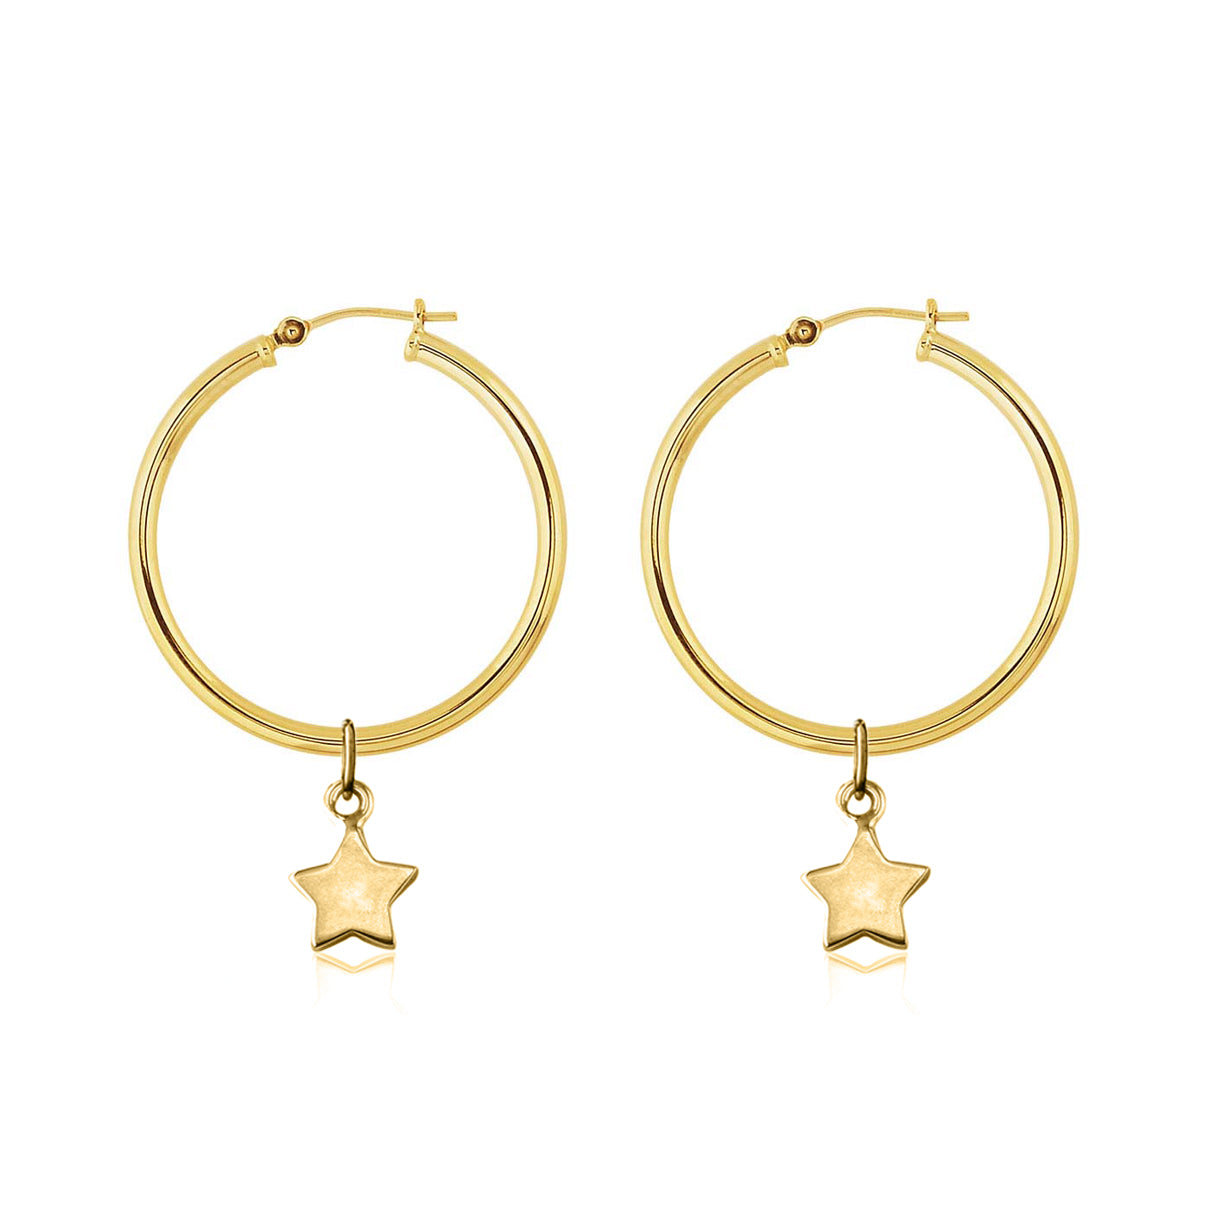 Hoop Earrings - Wish Upon a Star (Gold)